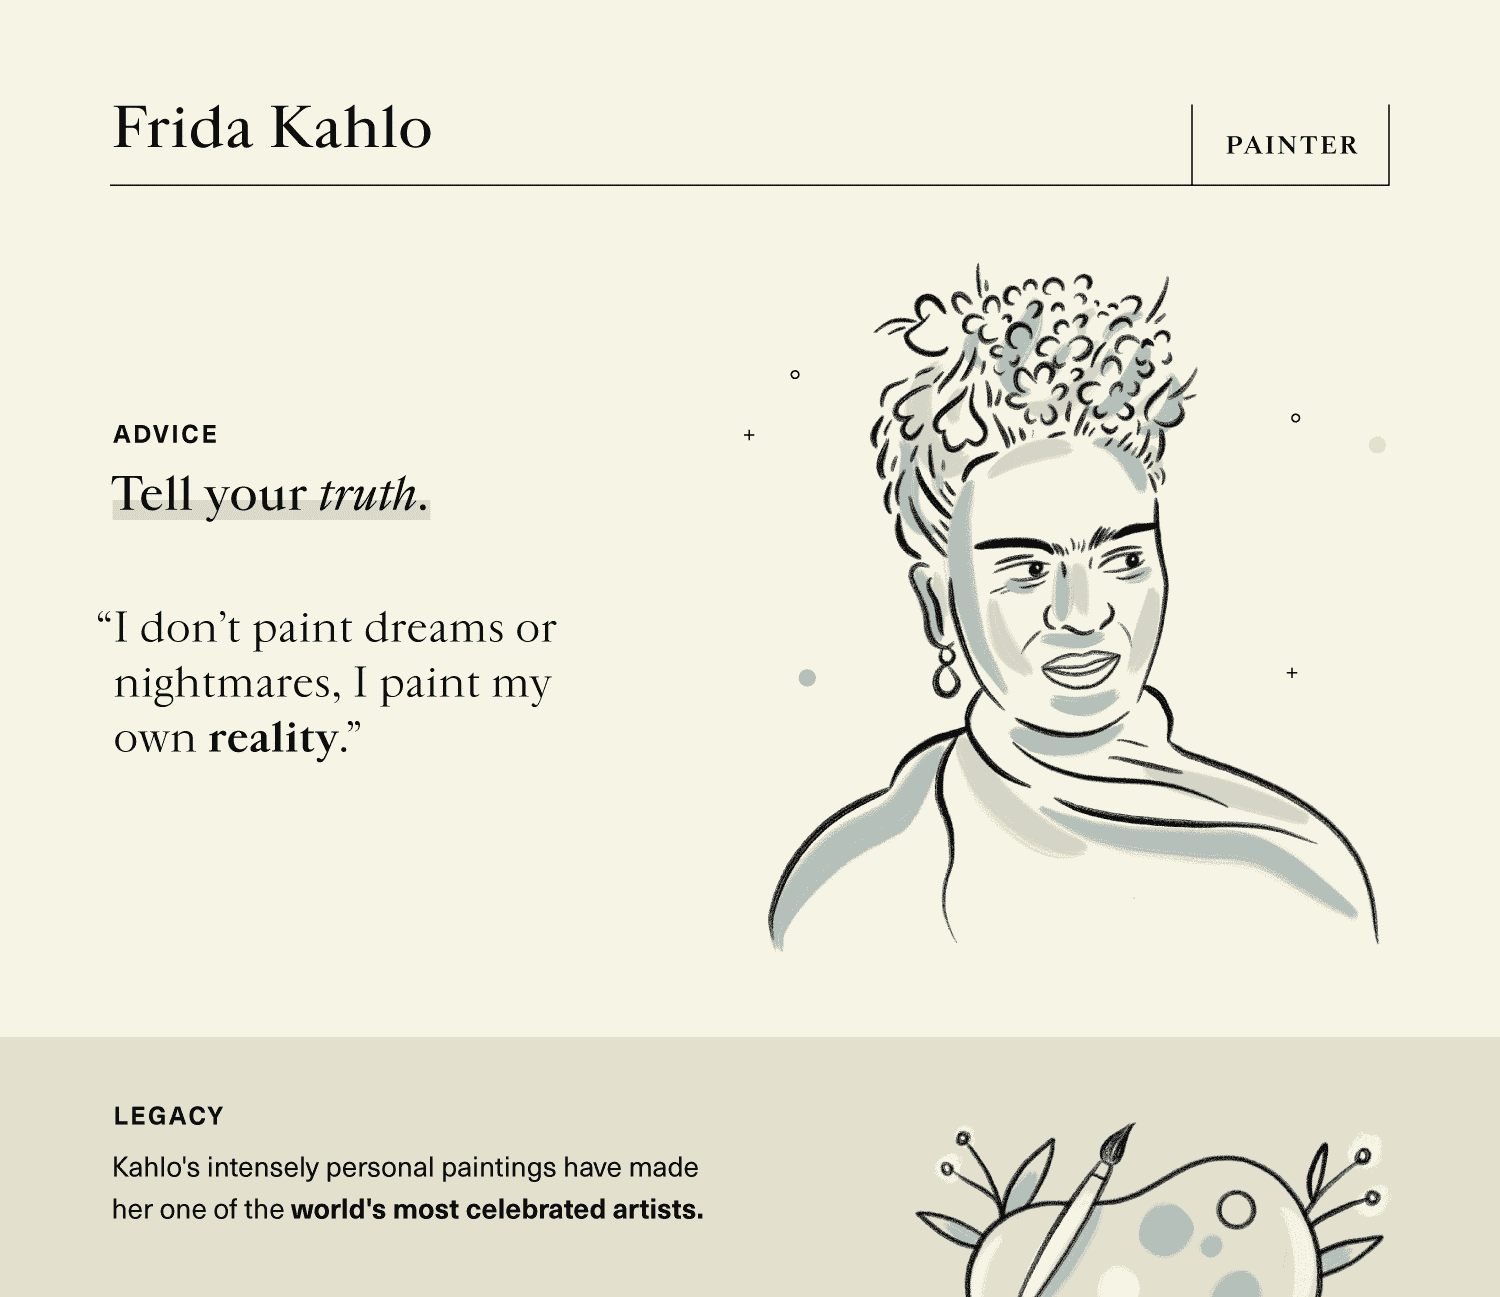 empowering advice on self-expression from painter, Frida Kahlo.